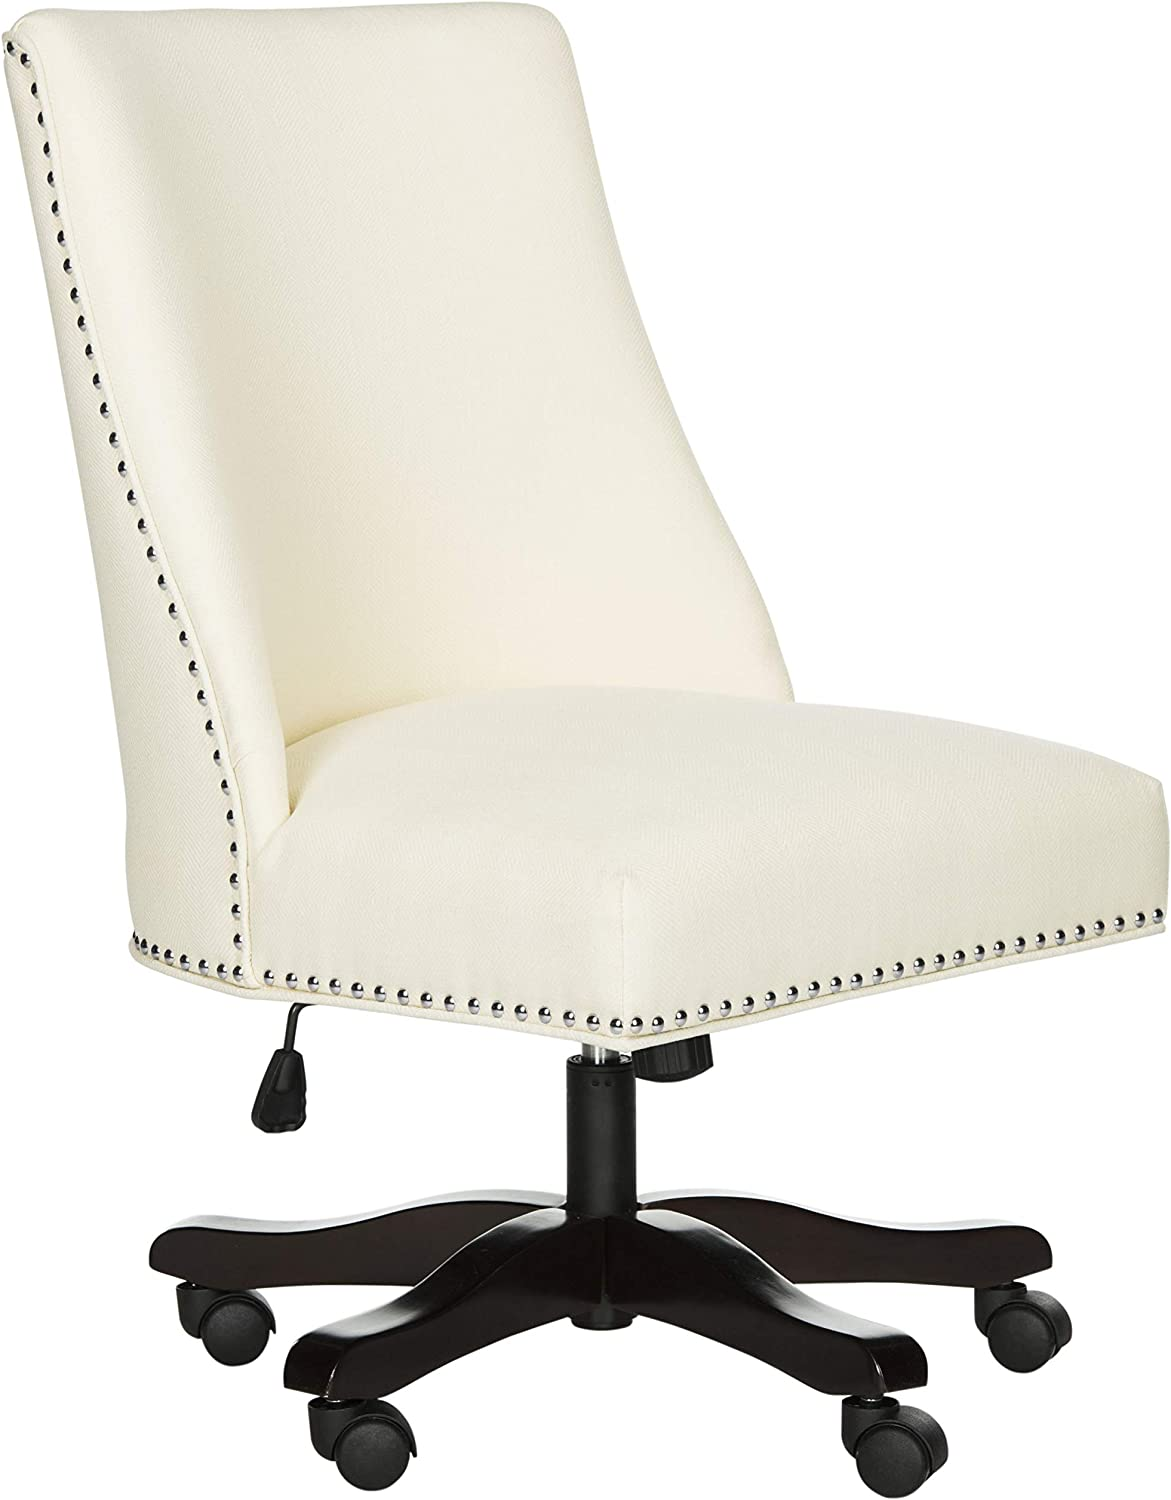 Safavieh Mercer Collection Scarlet Cream Desk Chair